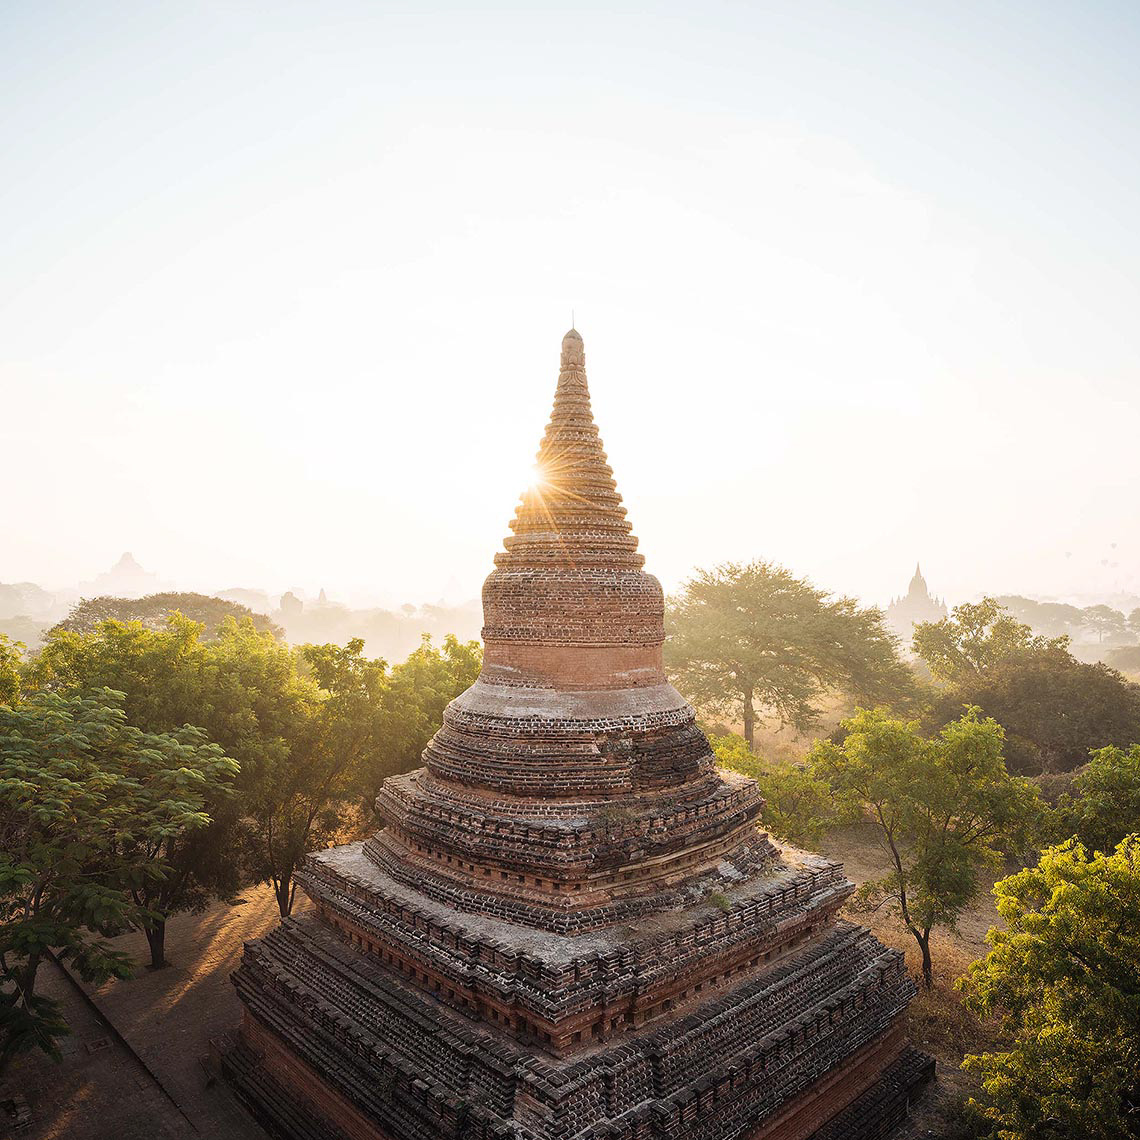 temples-ancient-architecture-dawn-bagan-myanmar-travel